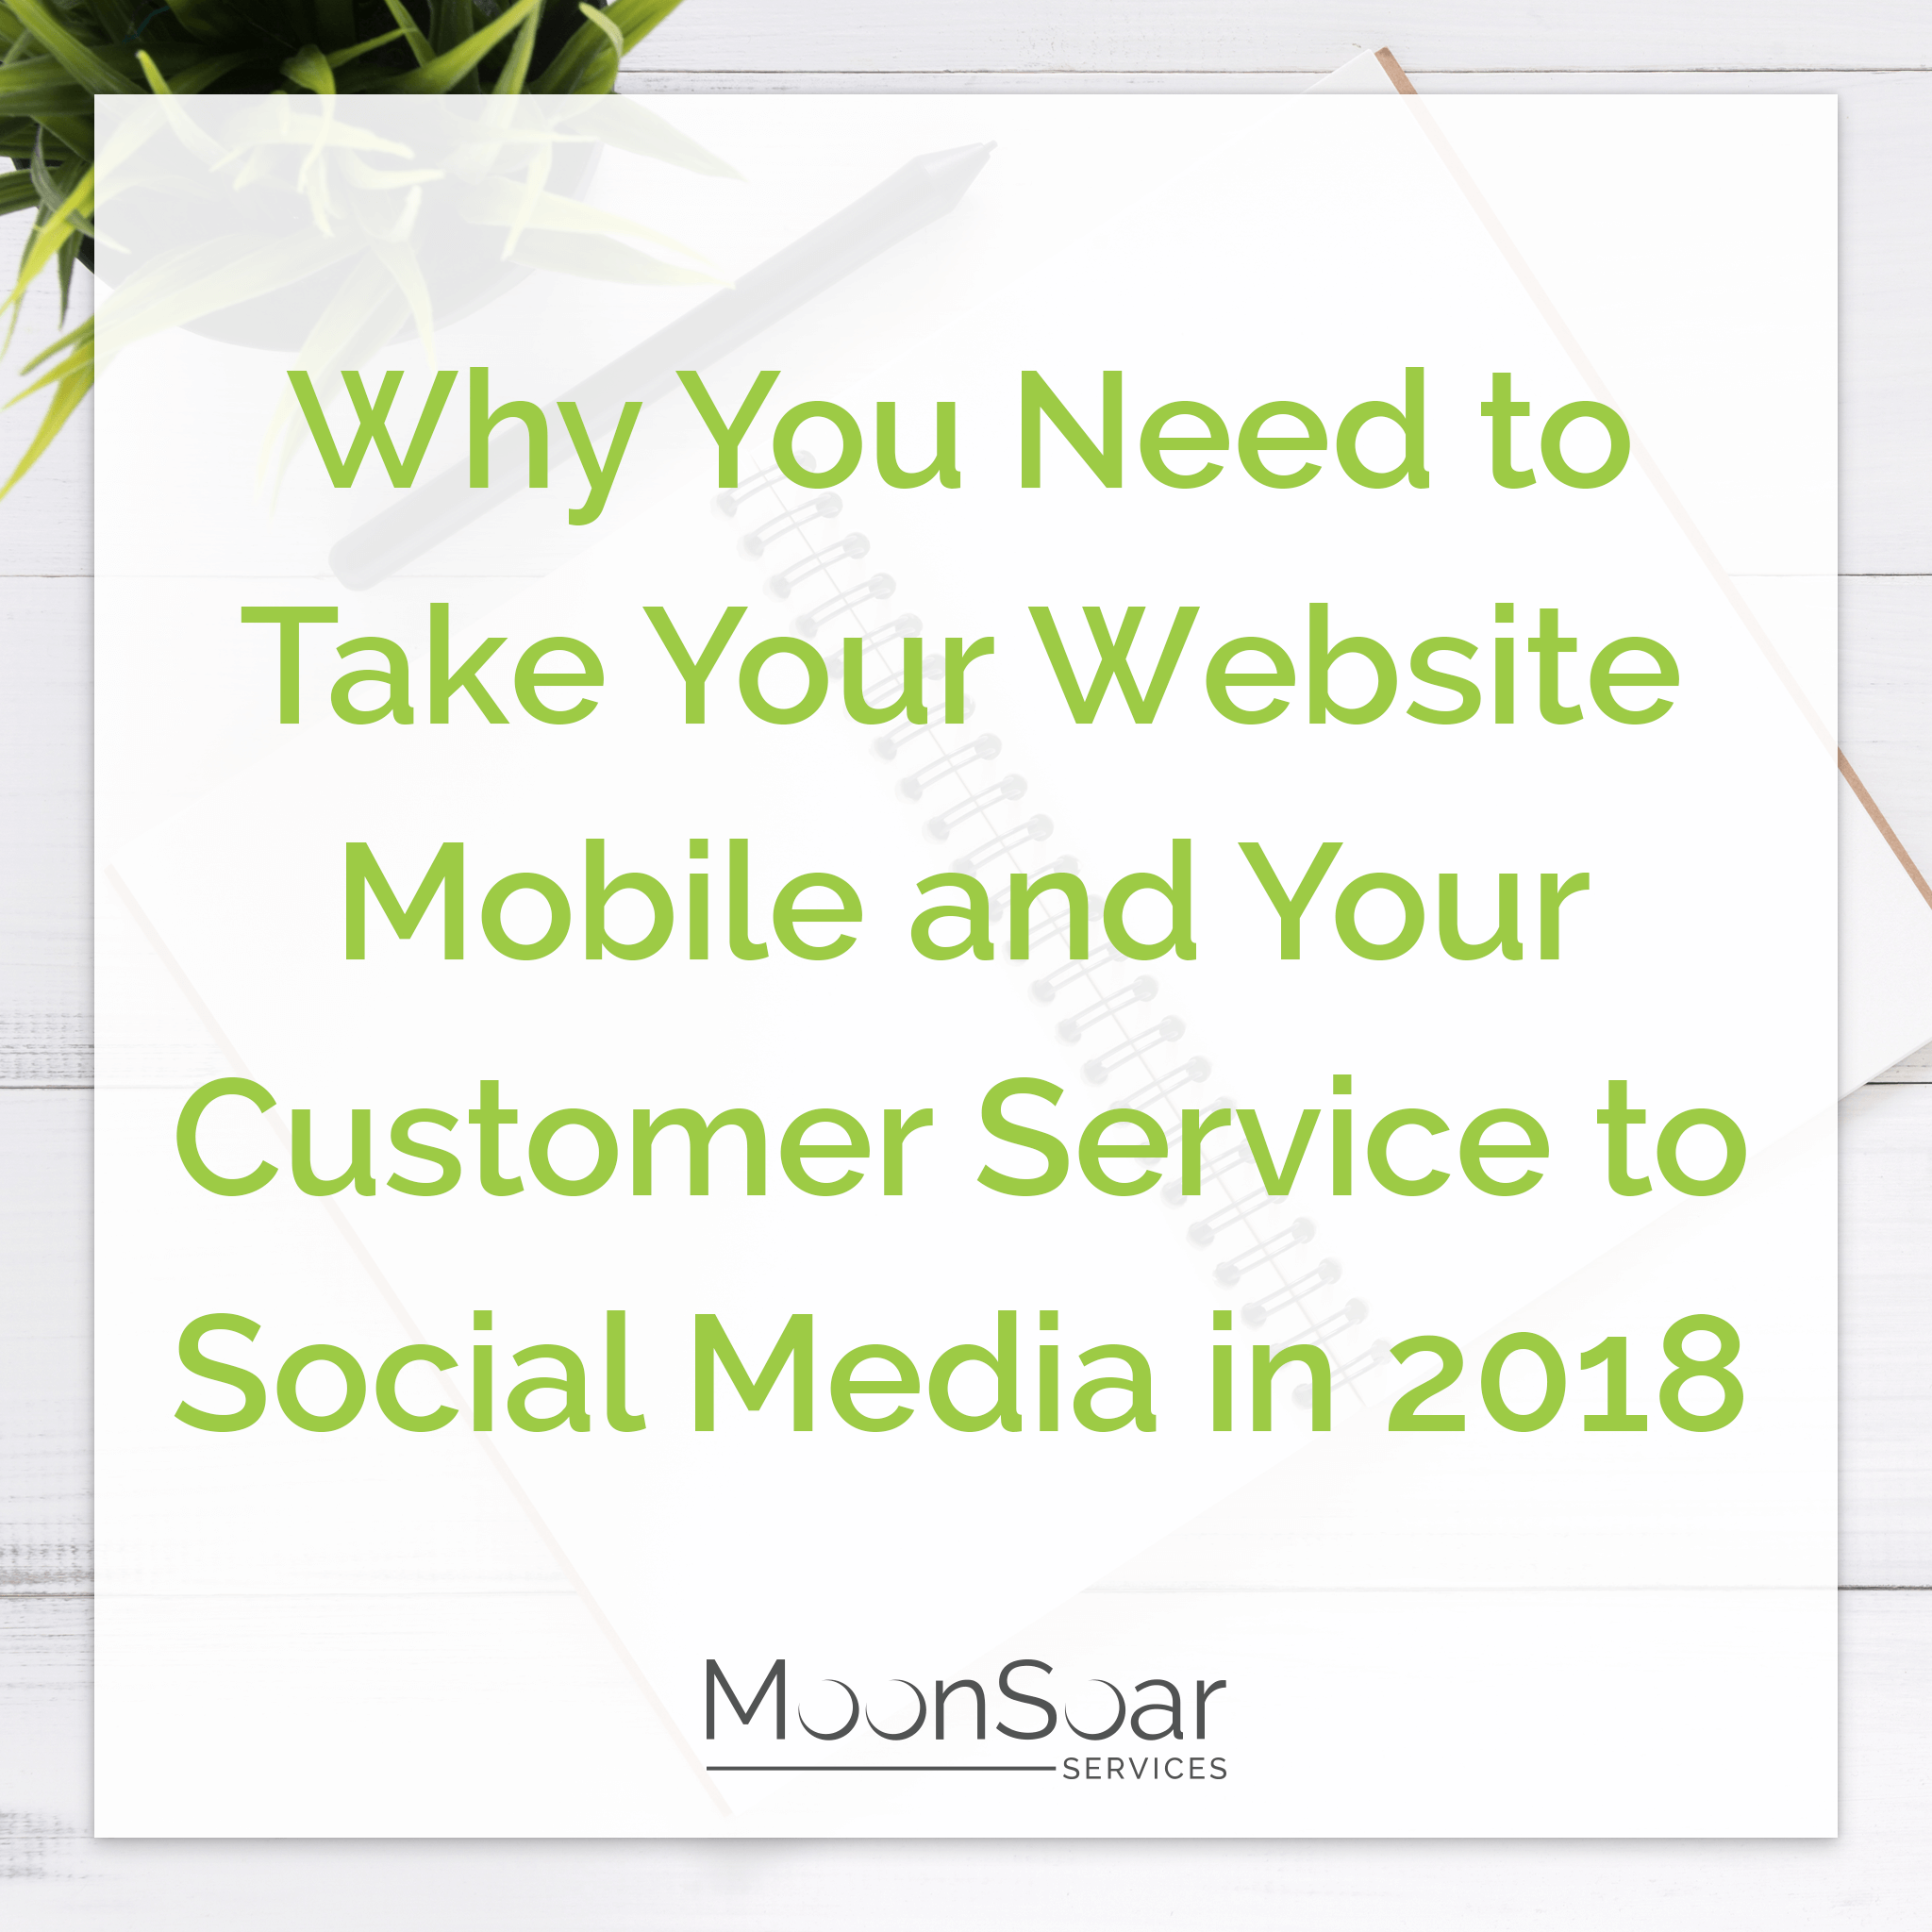 Why You Need to Take Your Website Mobile and Your Customer Service to Social Media in 2018